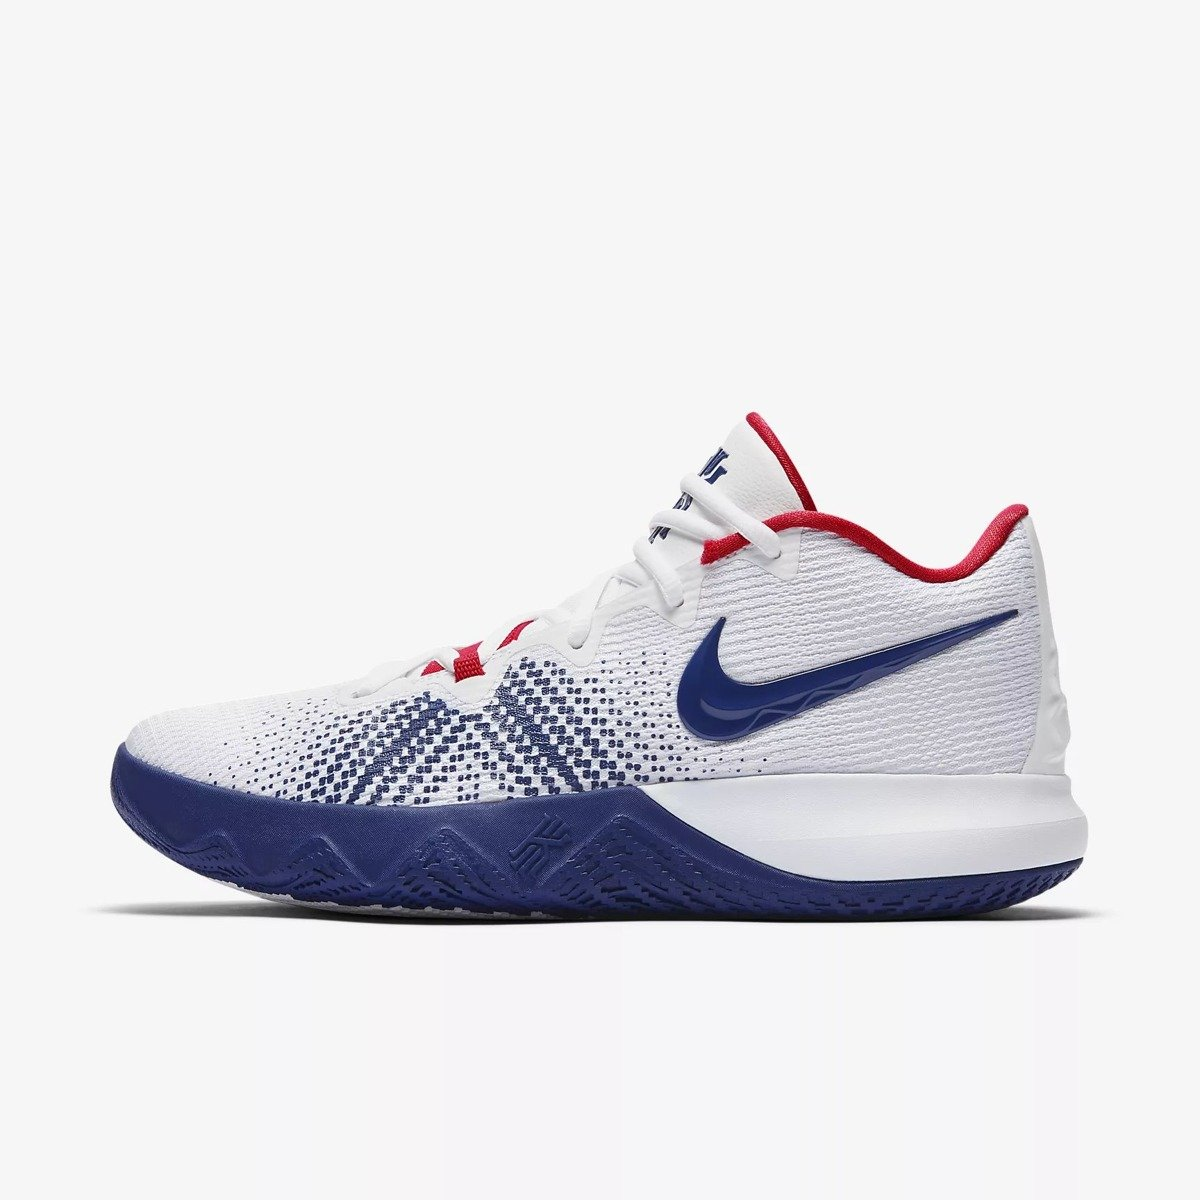 3a72bbb74d3 ... Nike Kyrie Flytrap Shoes - AA7071-146 ...